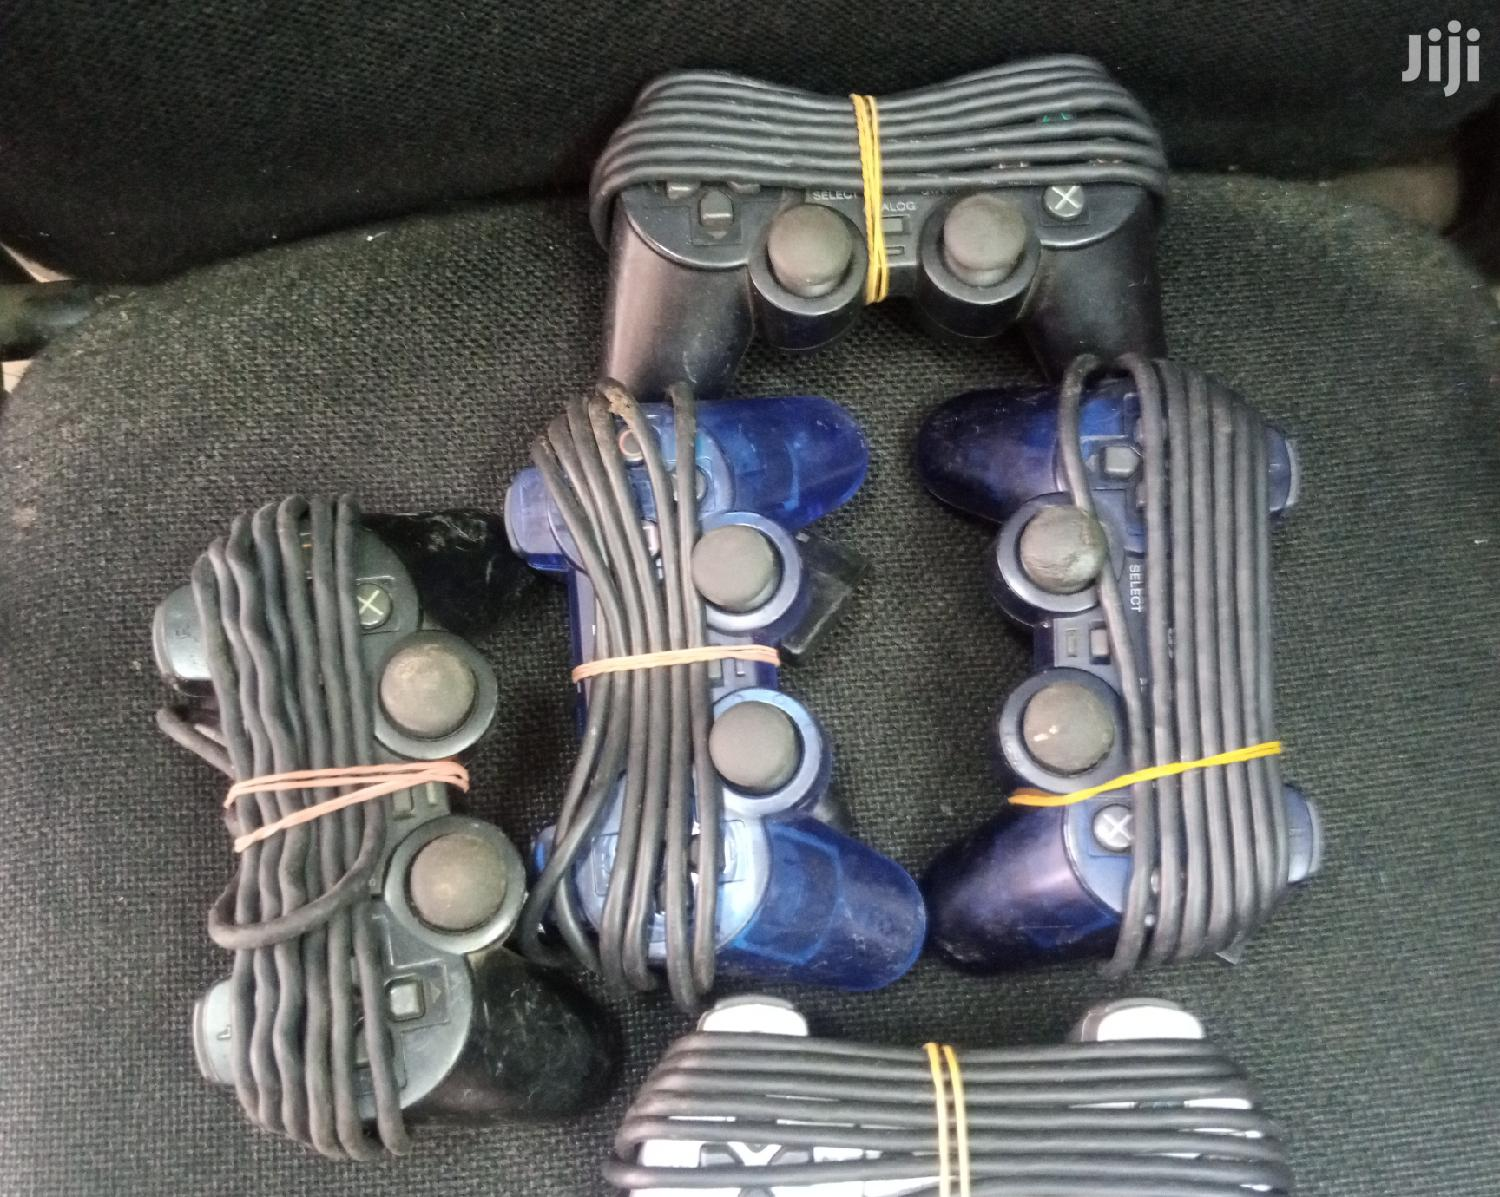 Original Dualshock Ps2 London Use Controllers | Video Game Consoles for sale in Accra new Town, Greater Accra, Ghana